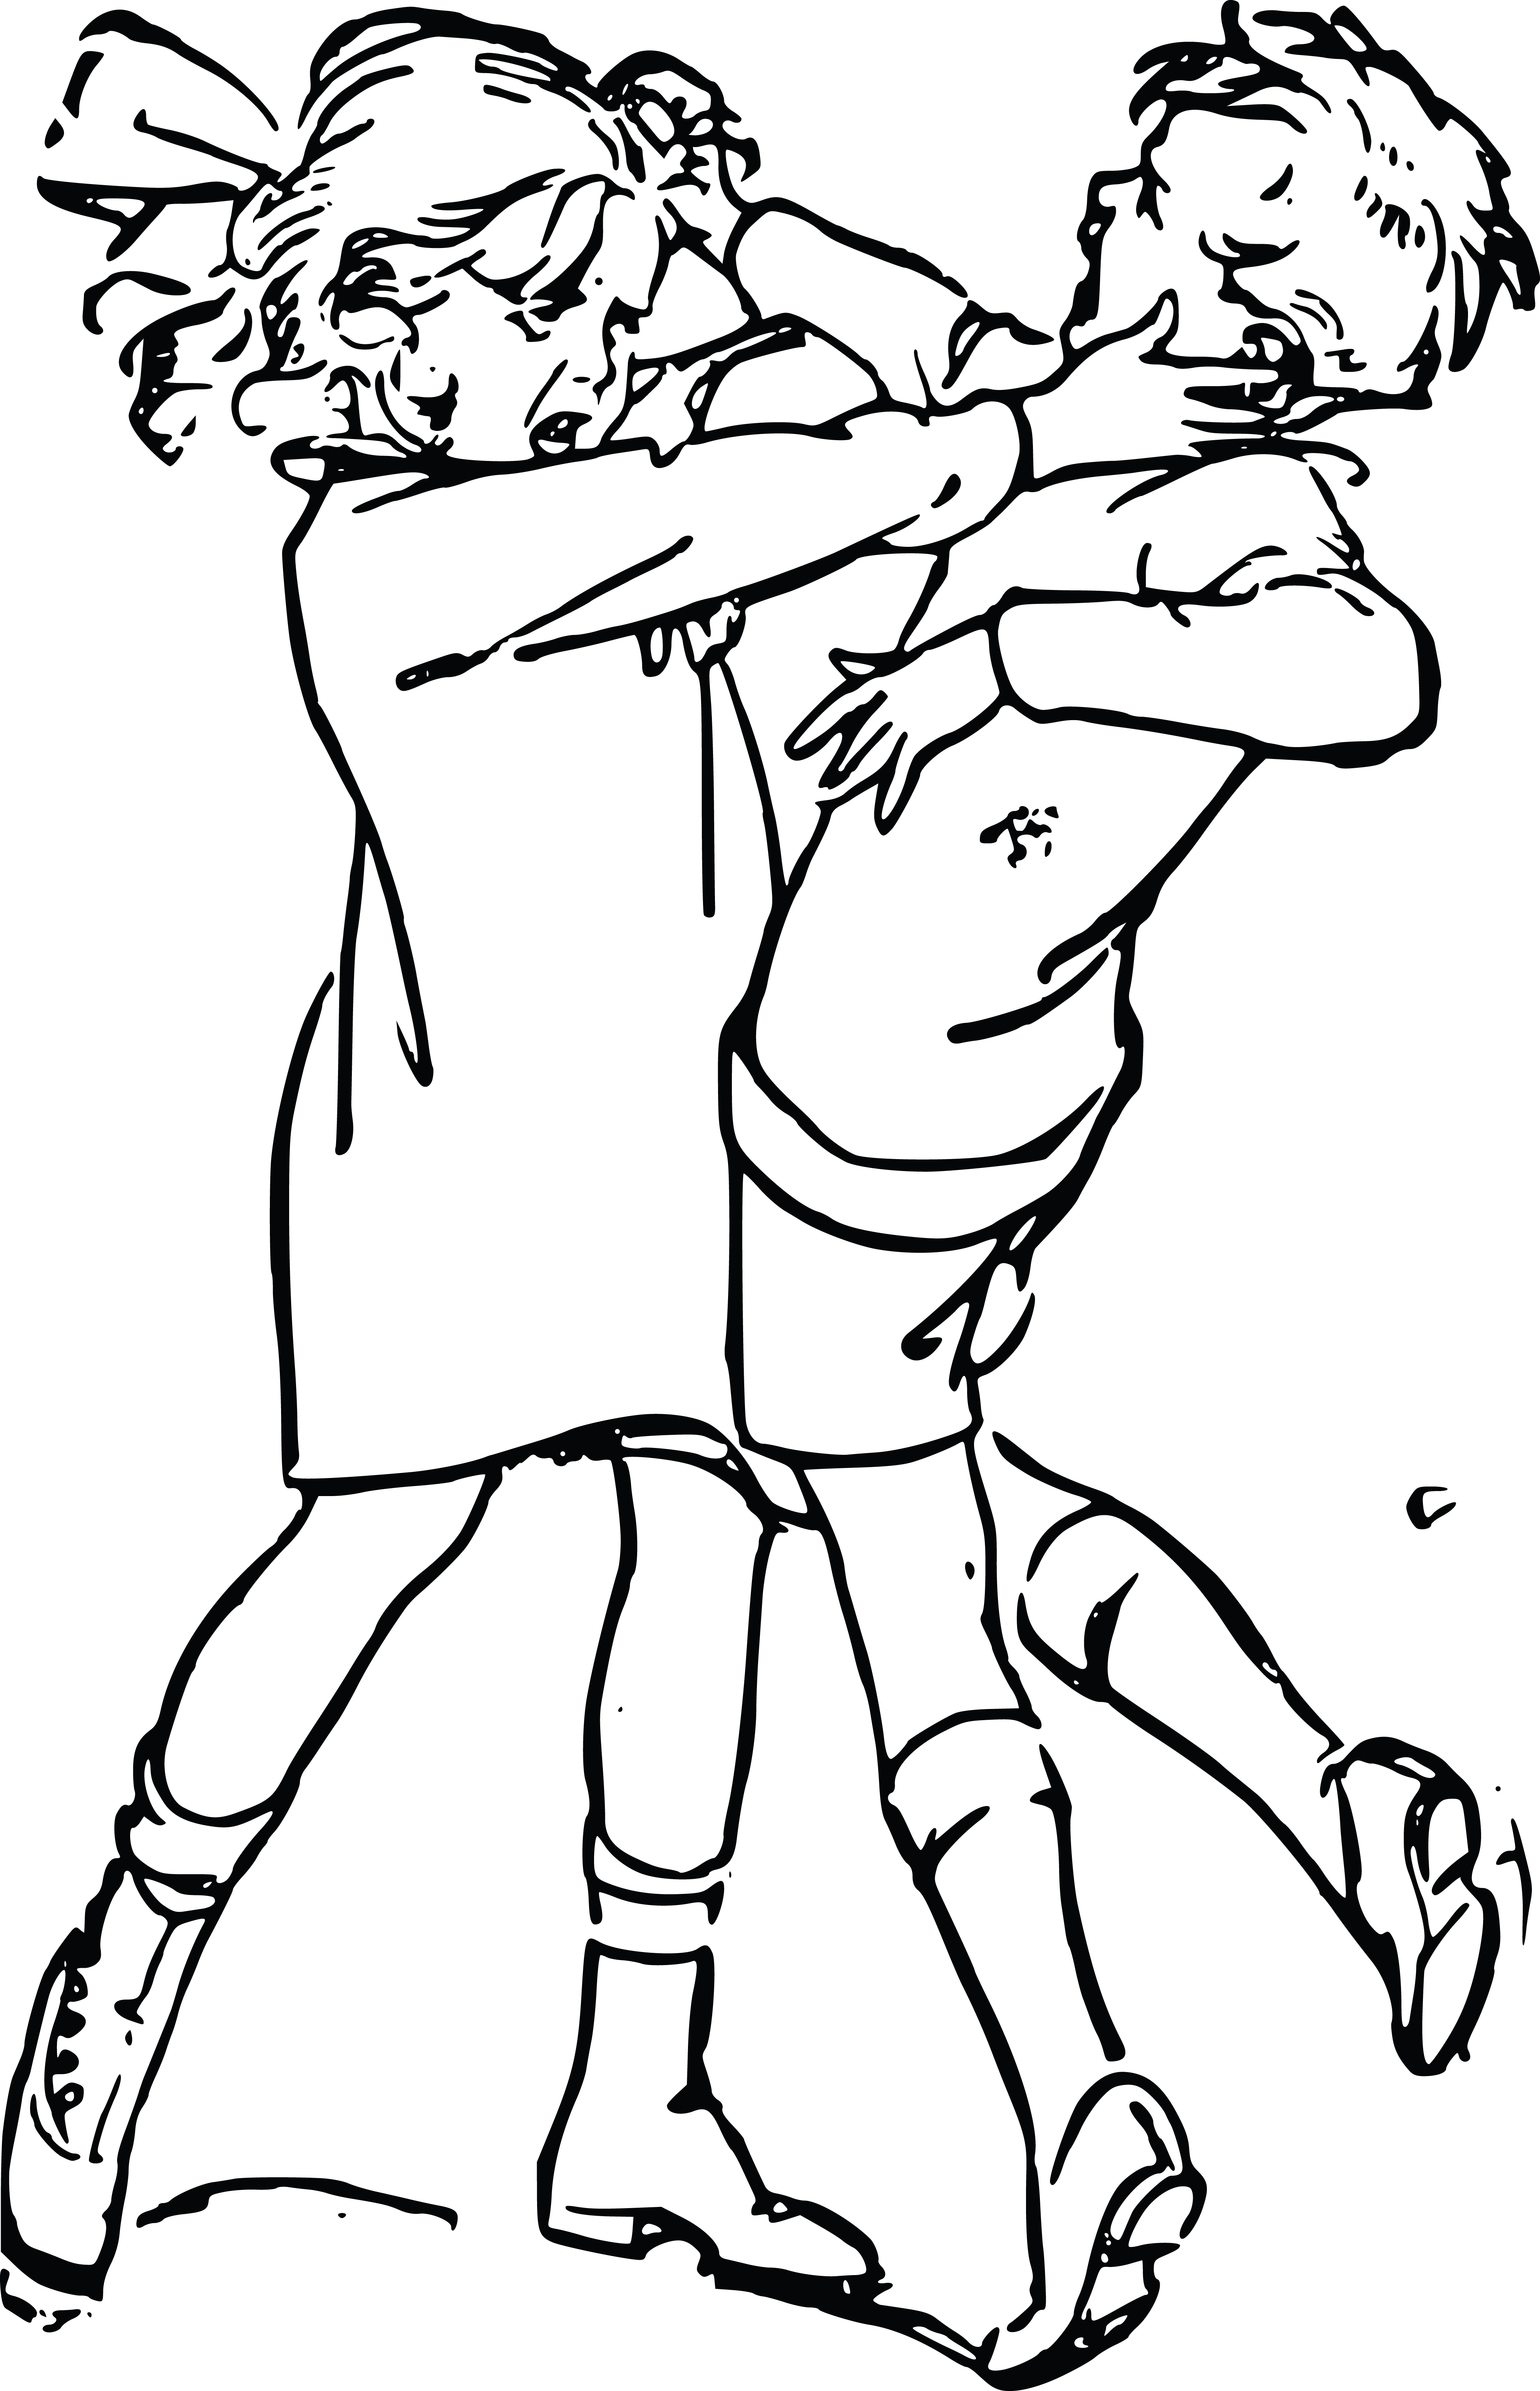 Girl fighting at getdrawings. Battle clipart drawing